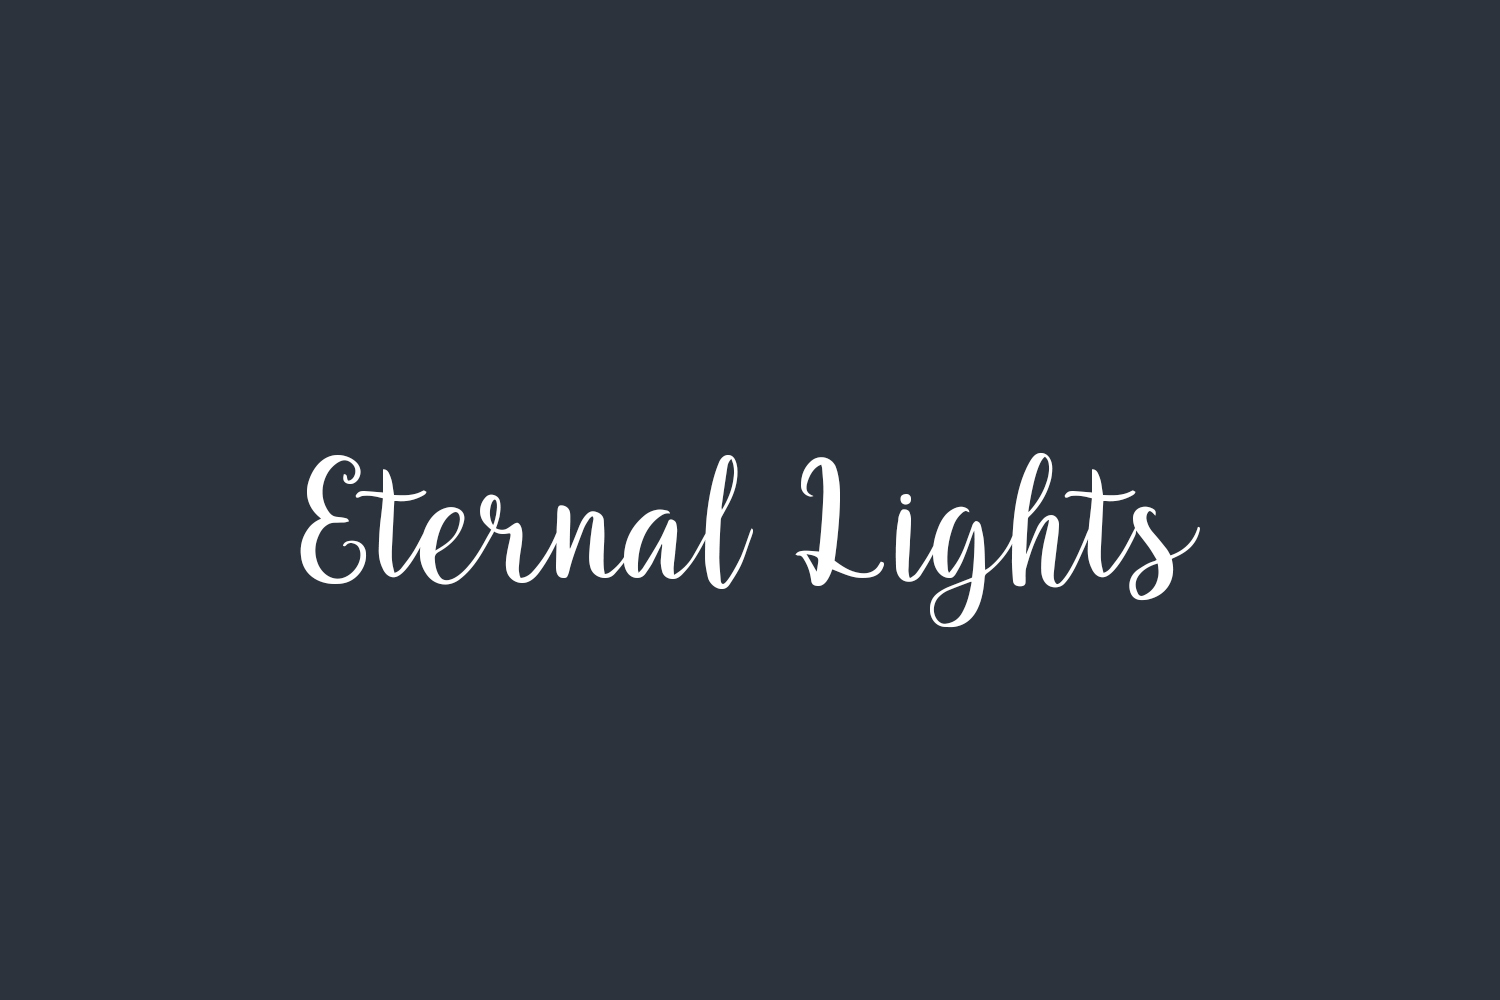 Eternal Lights Free Font